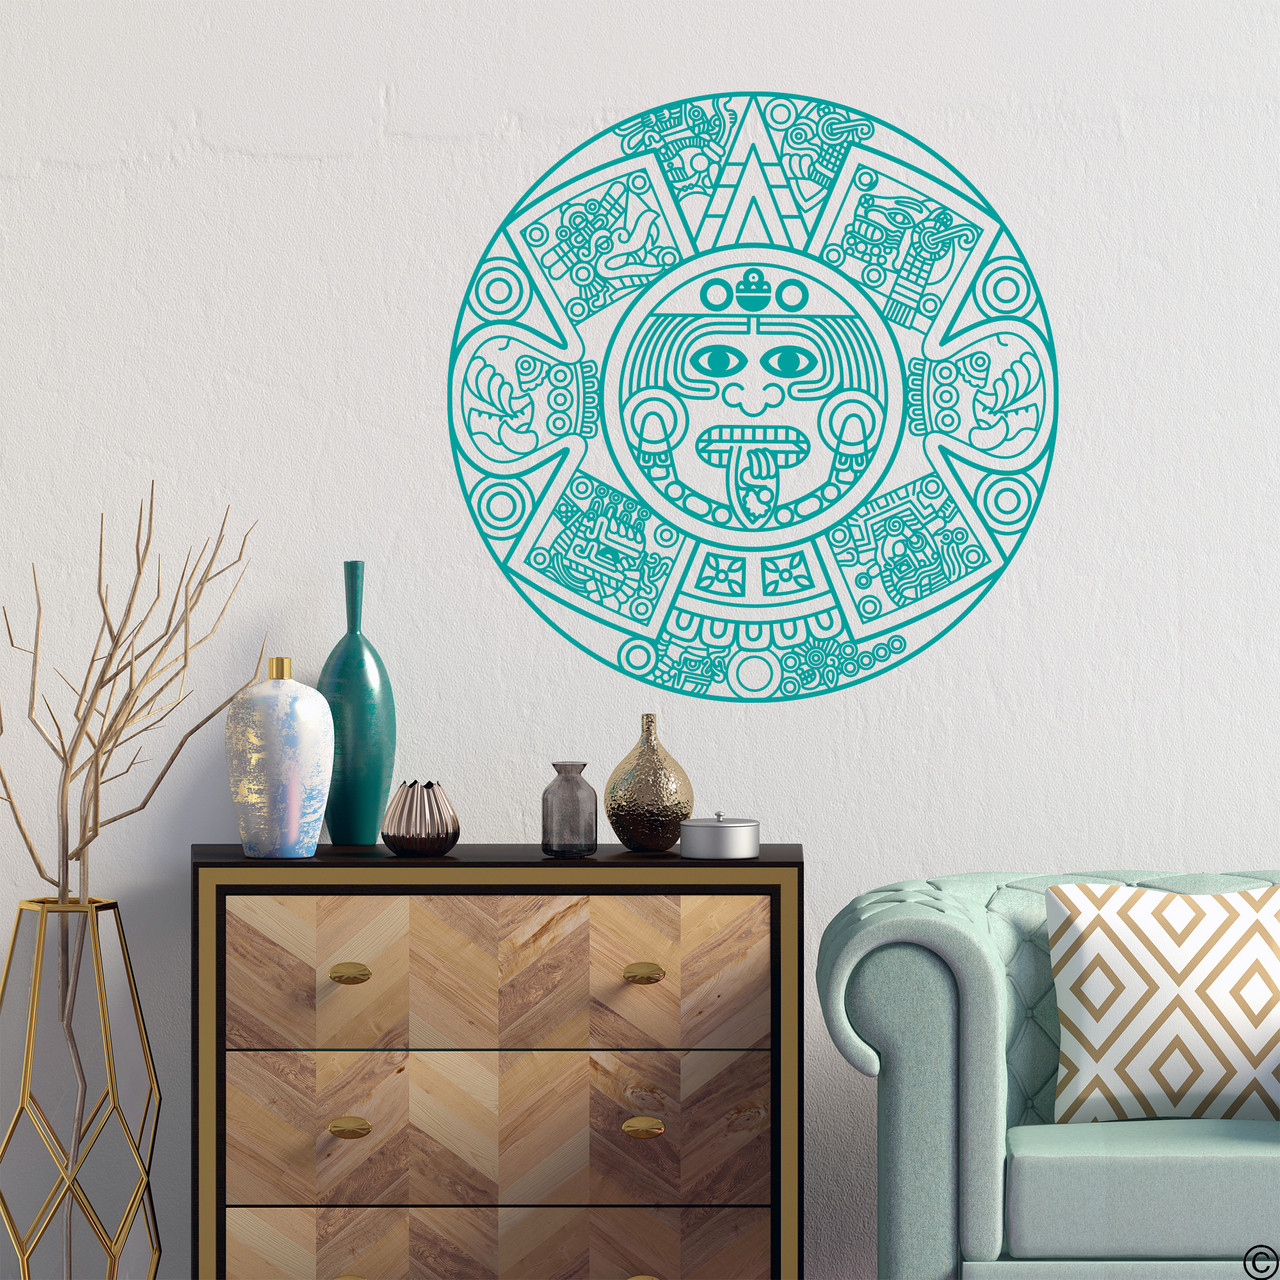 The Aztec Calendar wall decal in turquoise vinyl color.